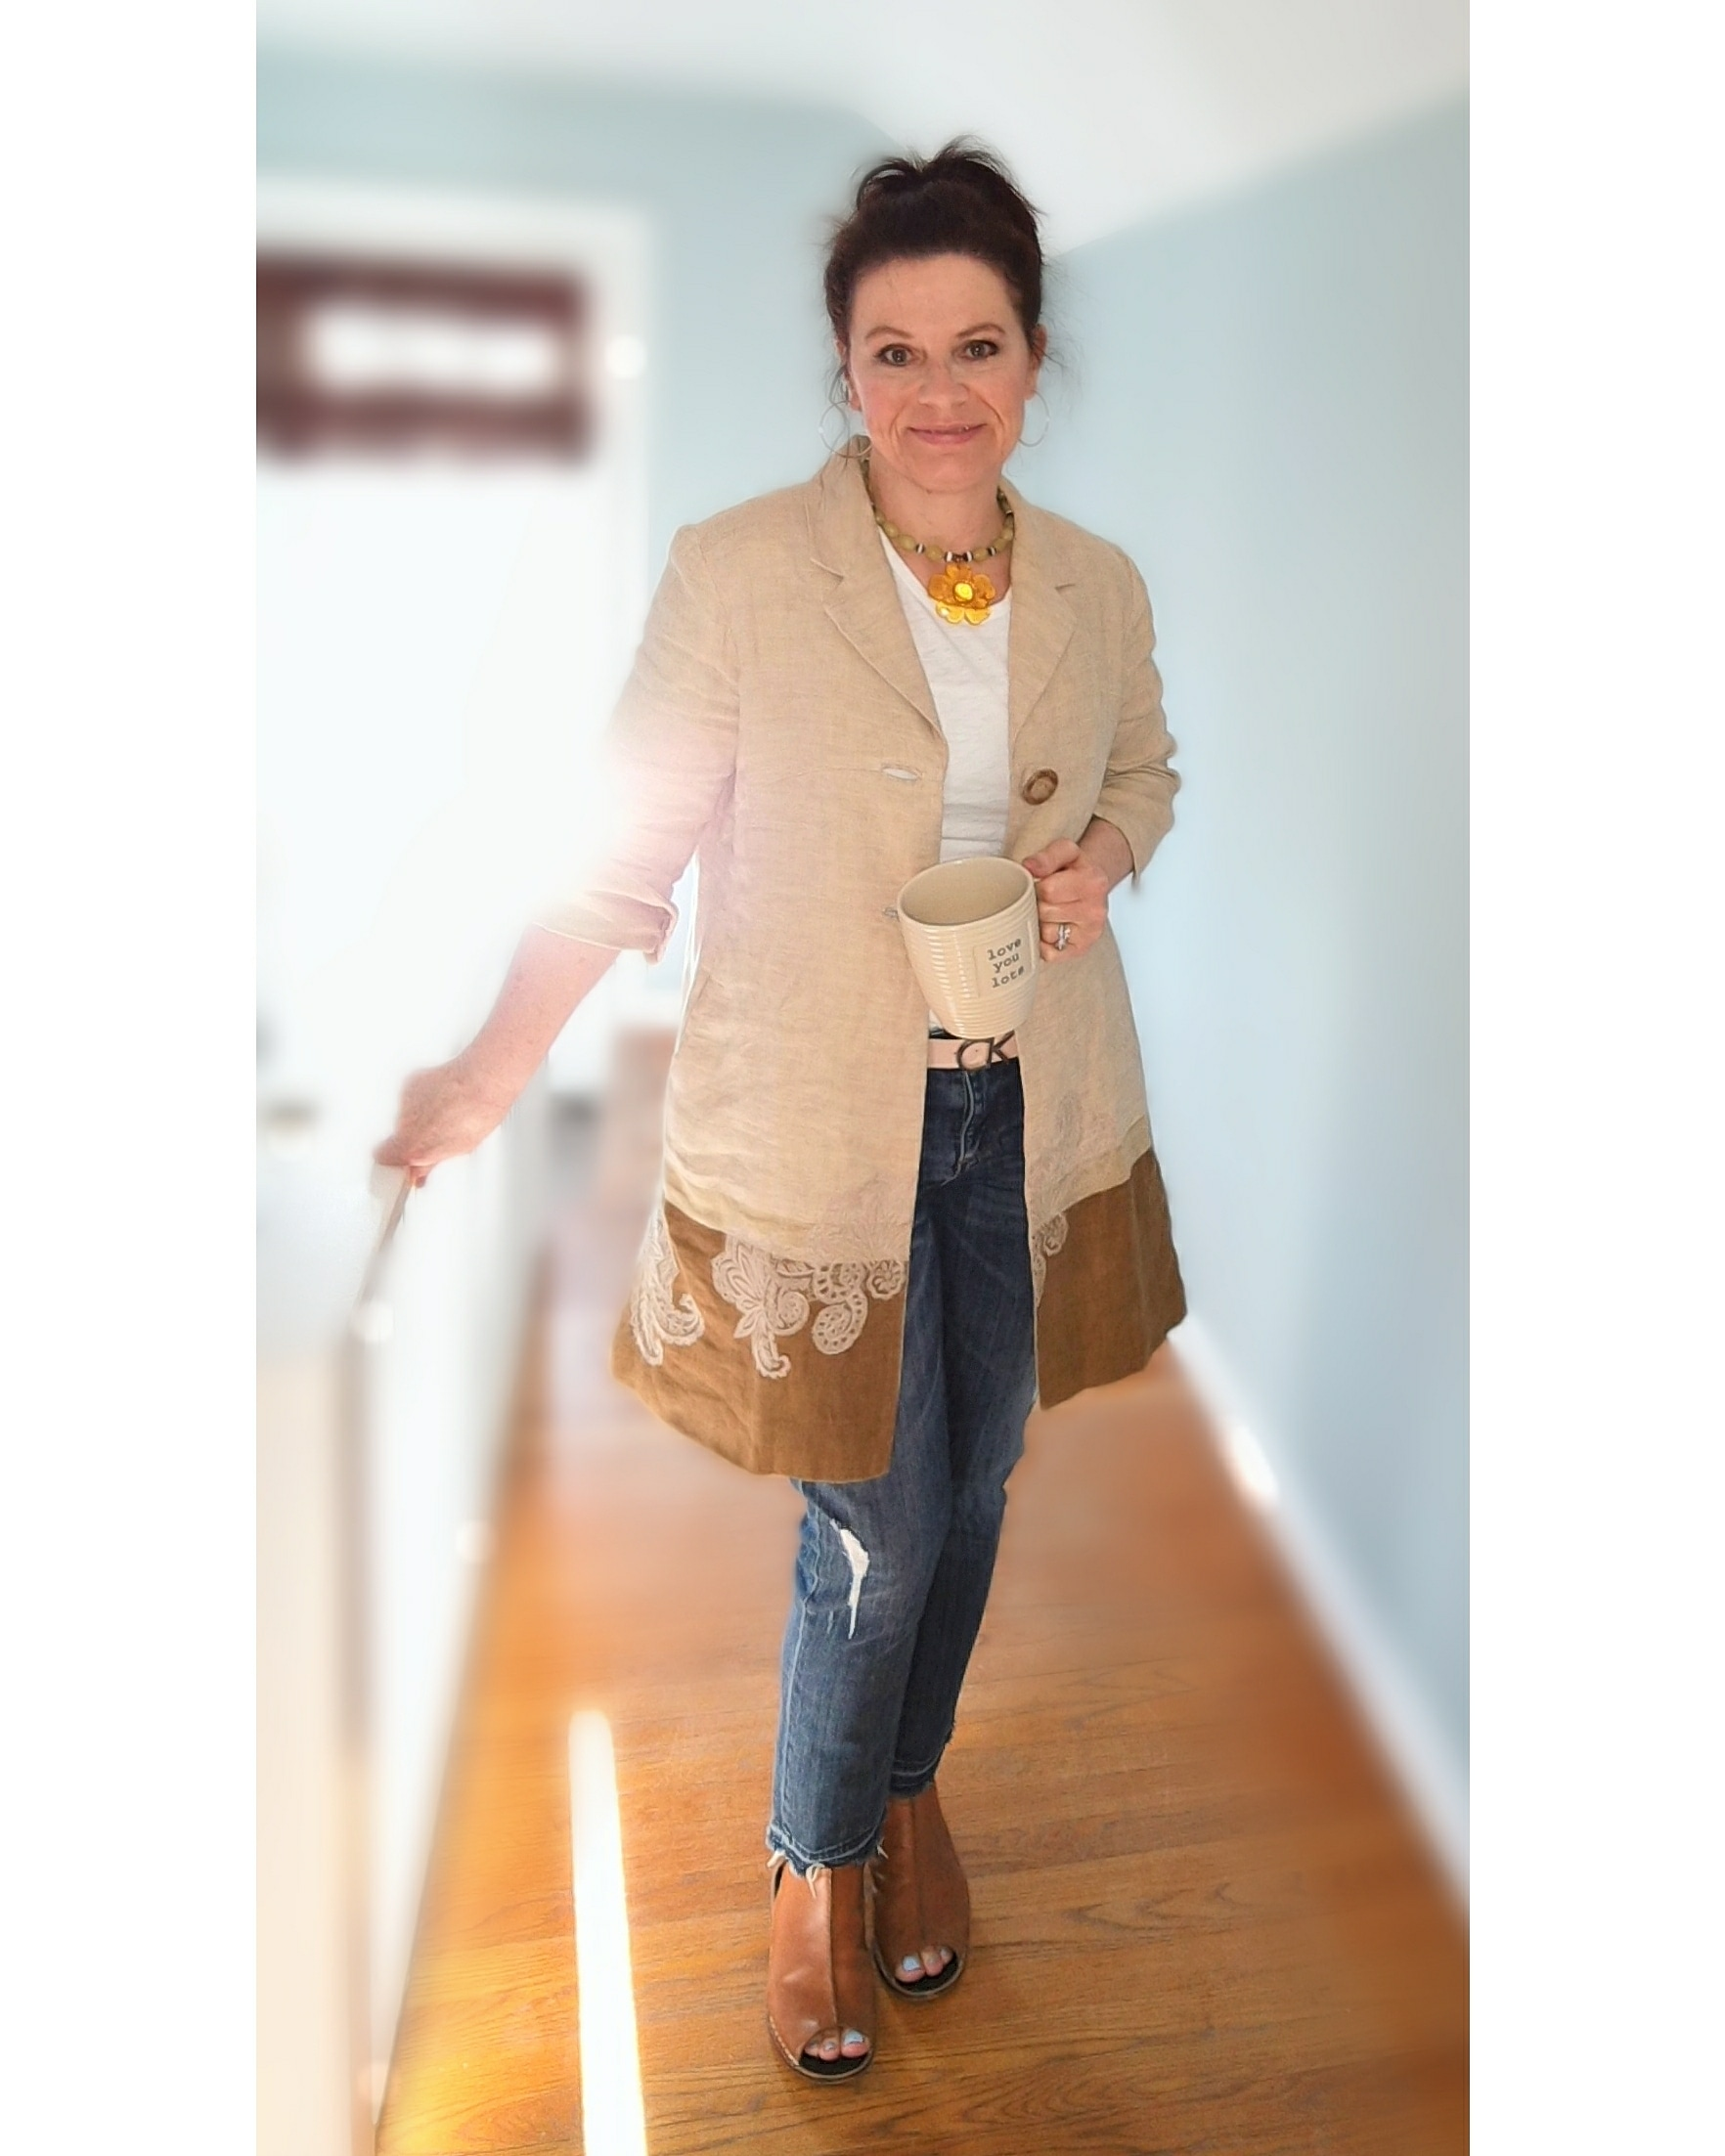 Closet Treasure - this linen jacket I haven't worn in two Spring seasons - I love rediscovering pieces !